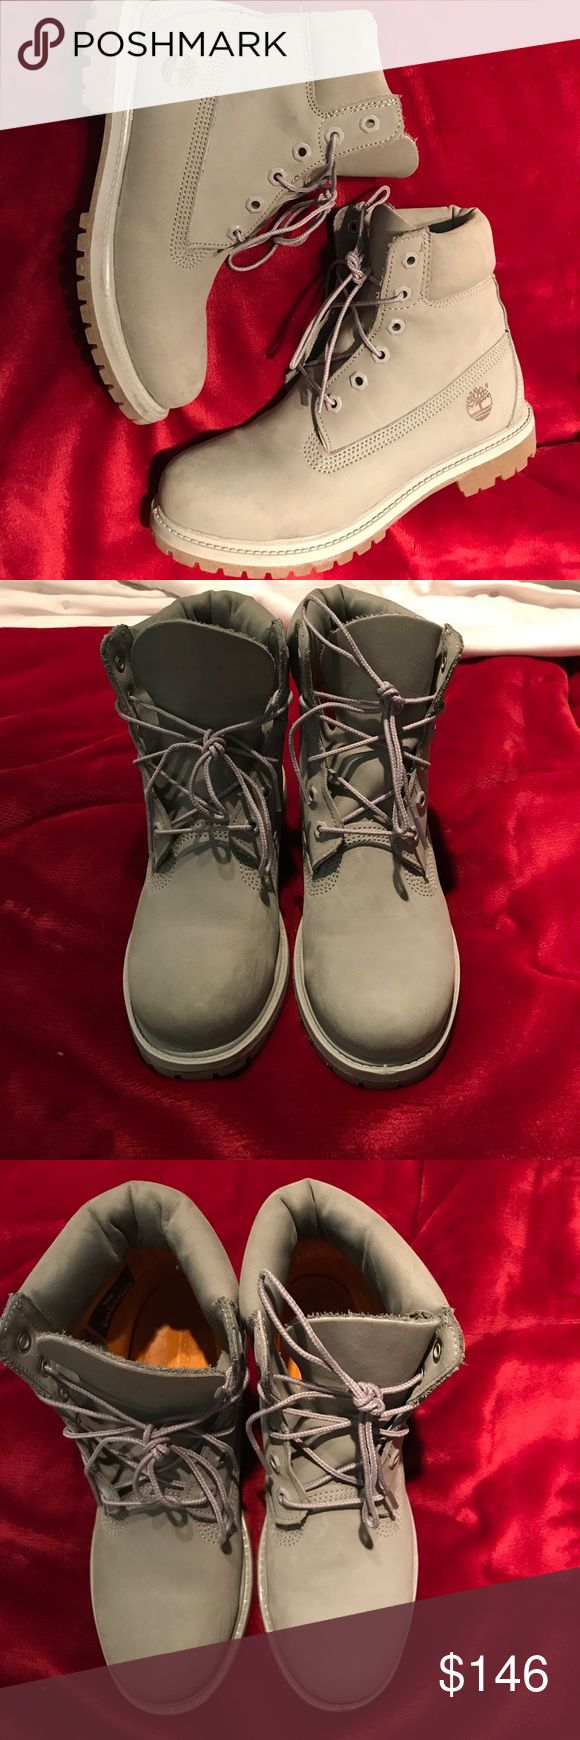 Grey Timberland boots unique grey timberlands, worn maybe 2 times, great condition, but no box. too big for me :( Size: 8. Timberland Shoes Sneakers